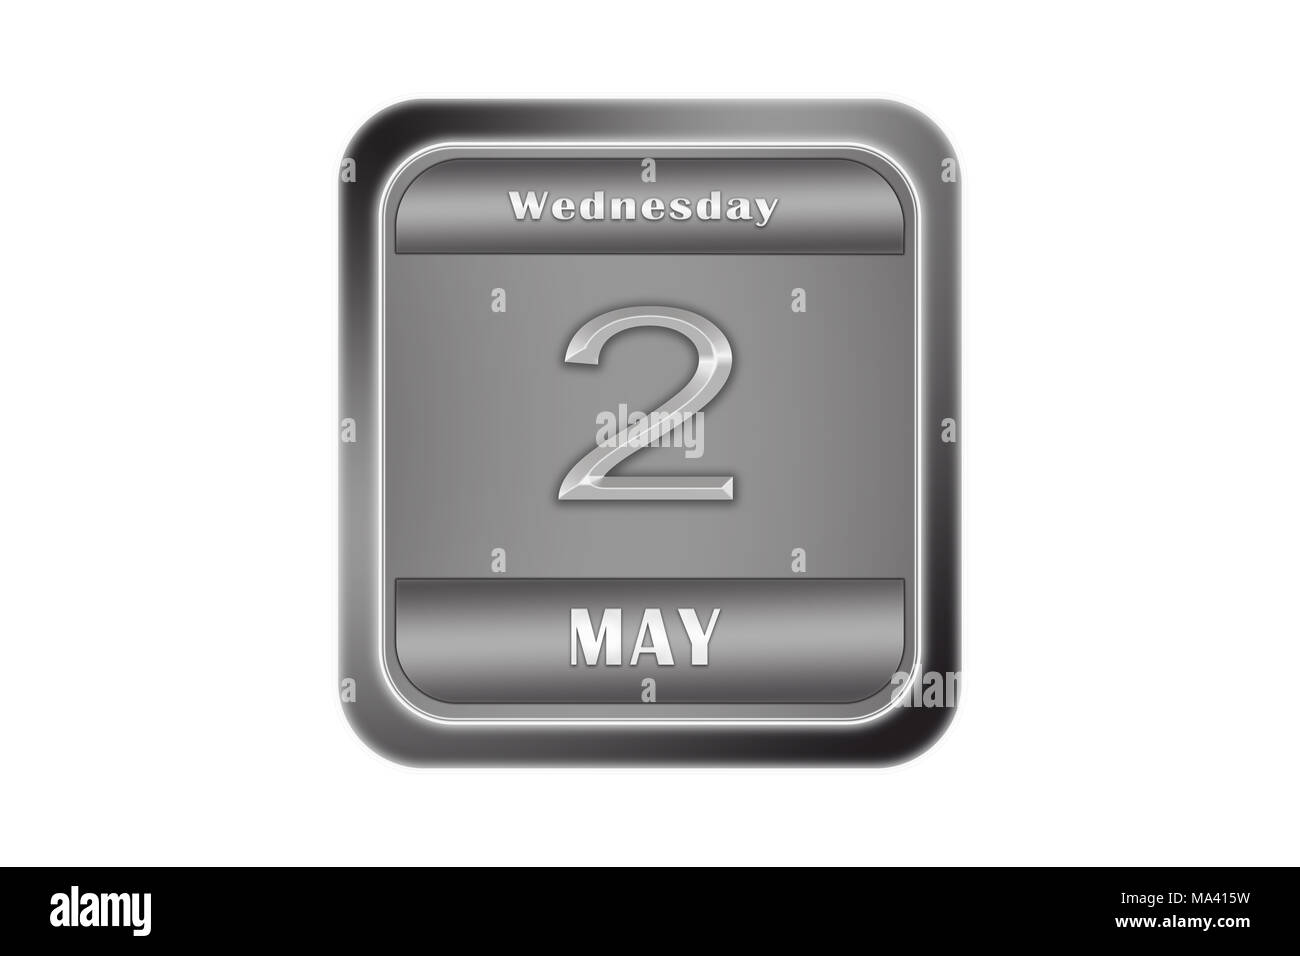 Date may 2, Wednesday written on a metal plate - Stock Image